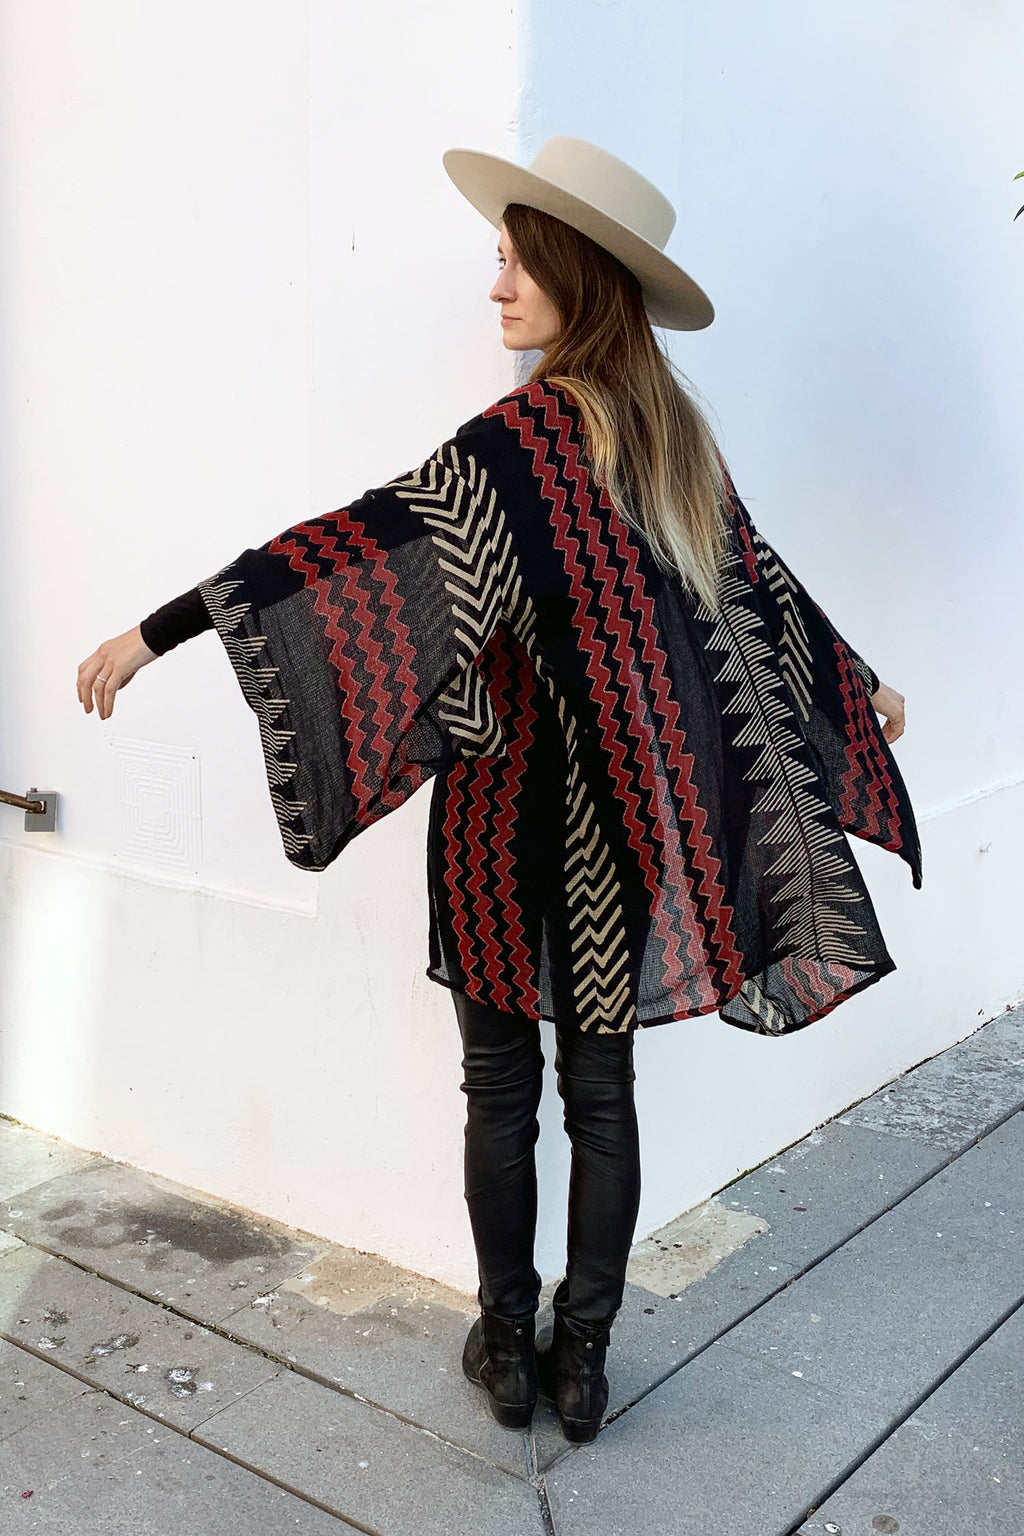 Al Short Kimono in Tribal Black White and Red Block Printed Pattern Unisex